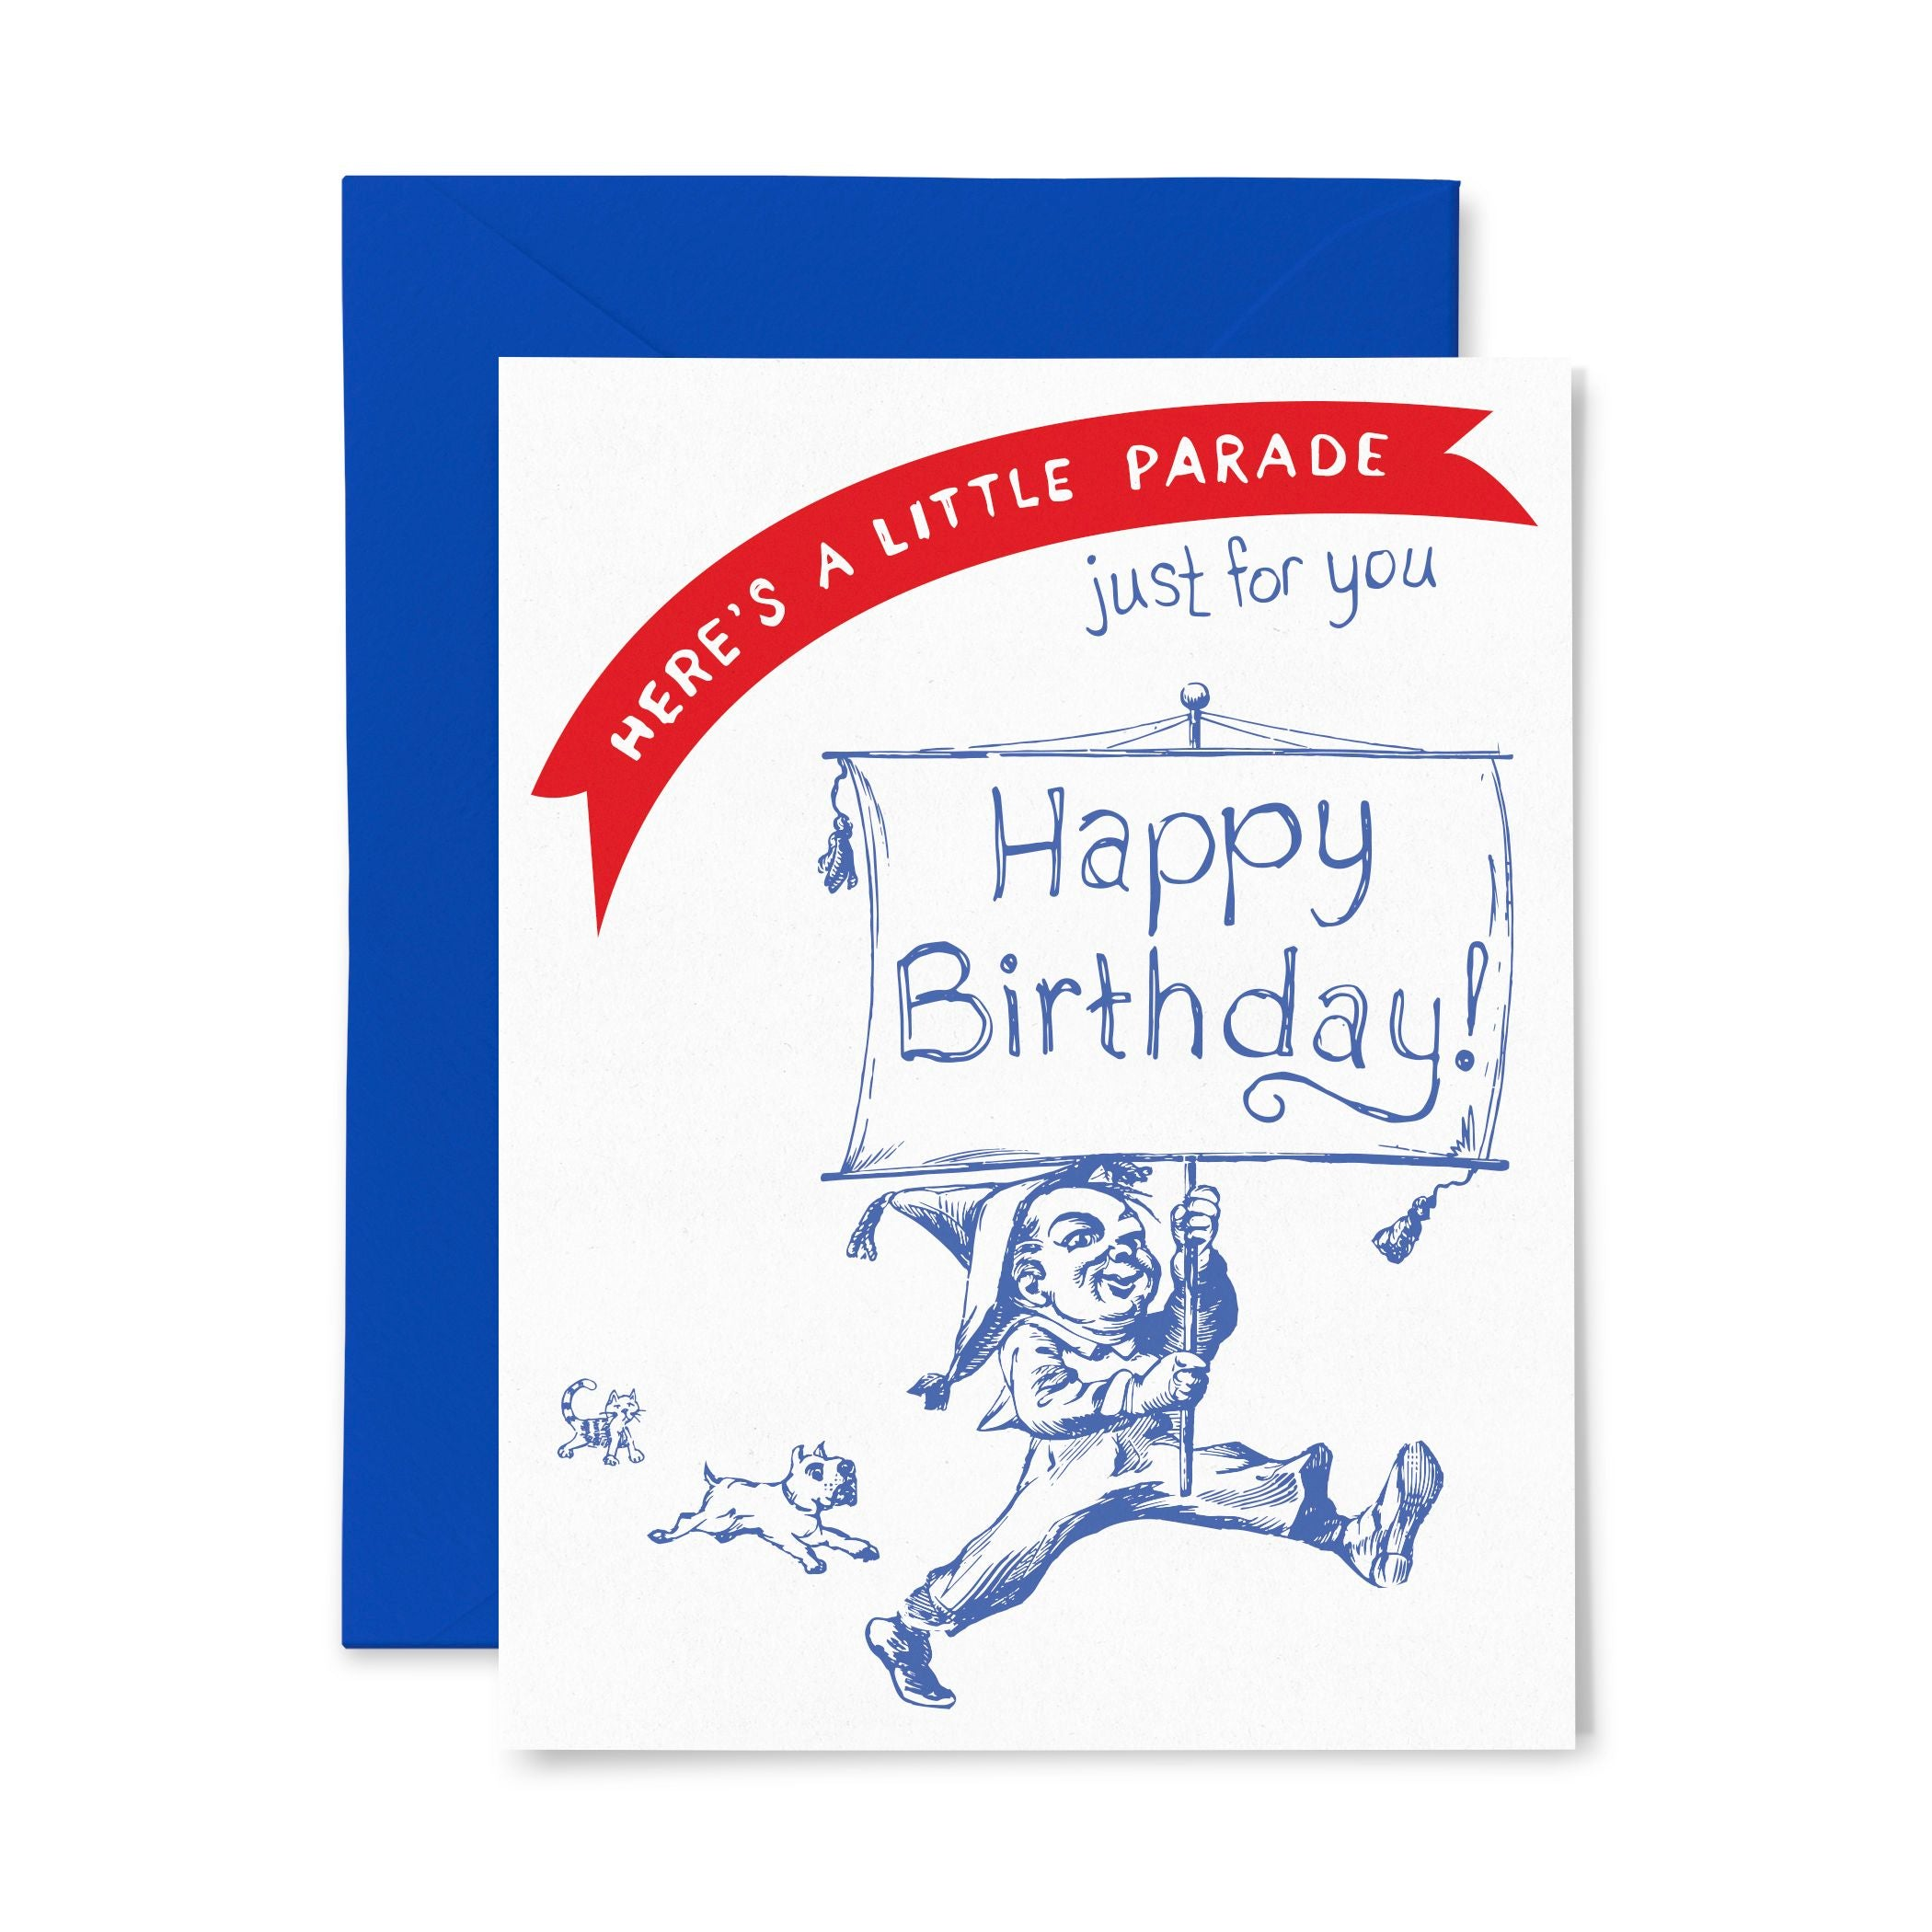 Parade | Birthday | Letterpress Greeting Card